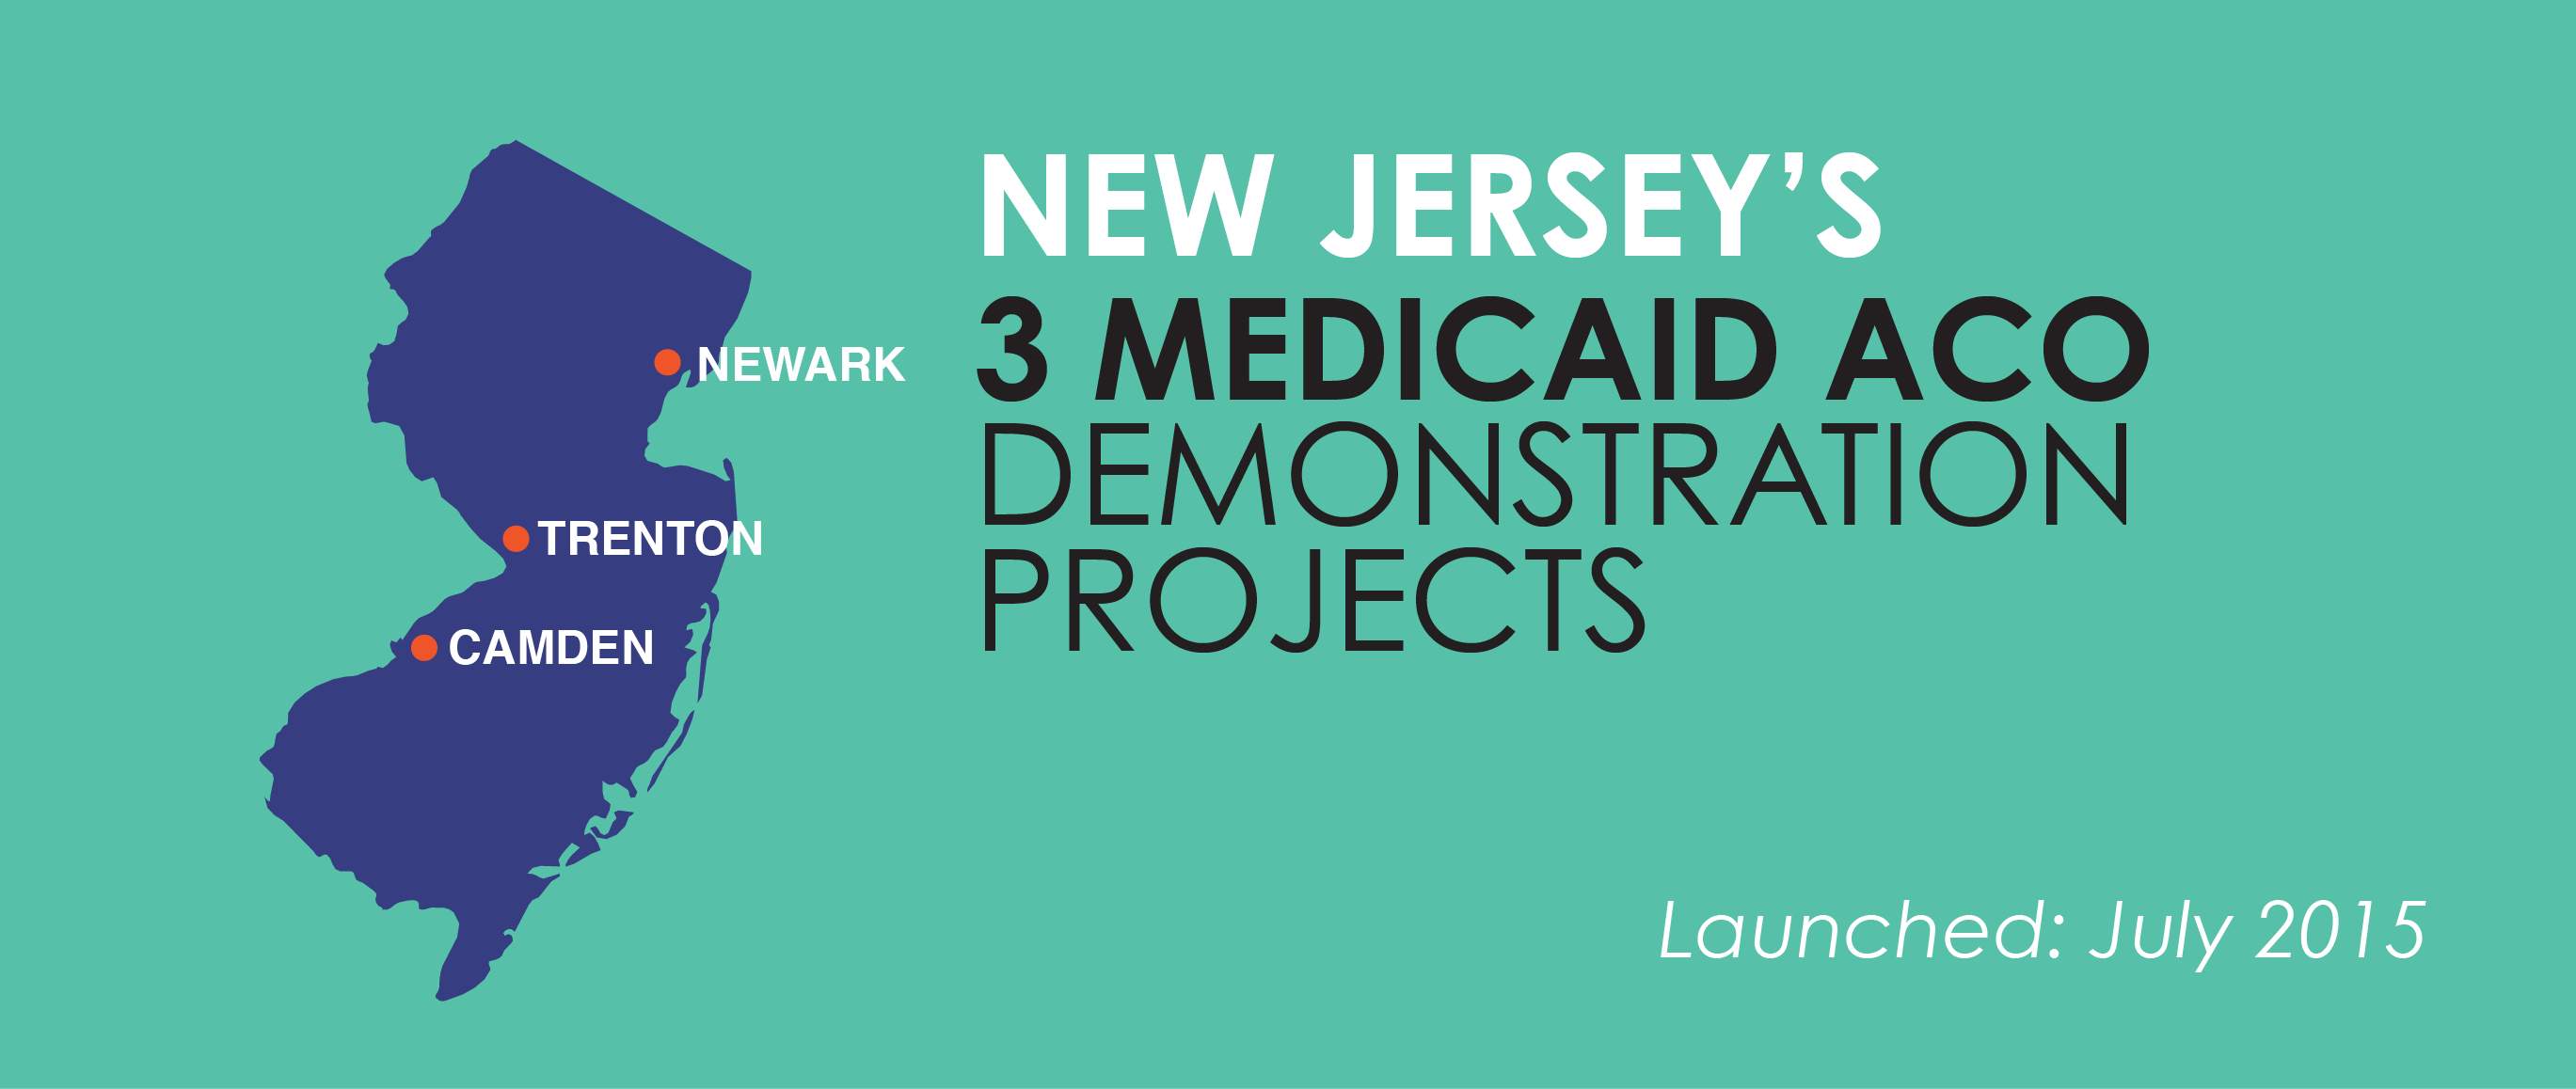 Map: New Jersey's 3 Medicaid ACO Demonstration Projects